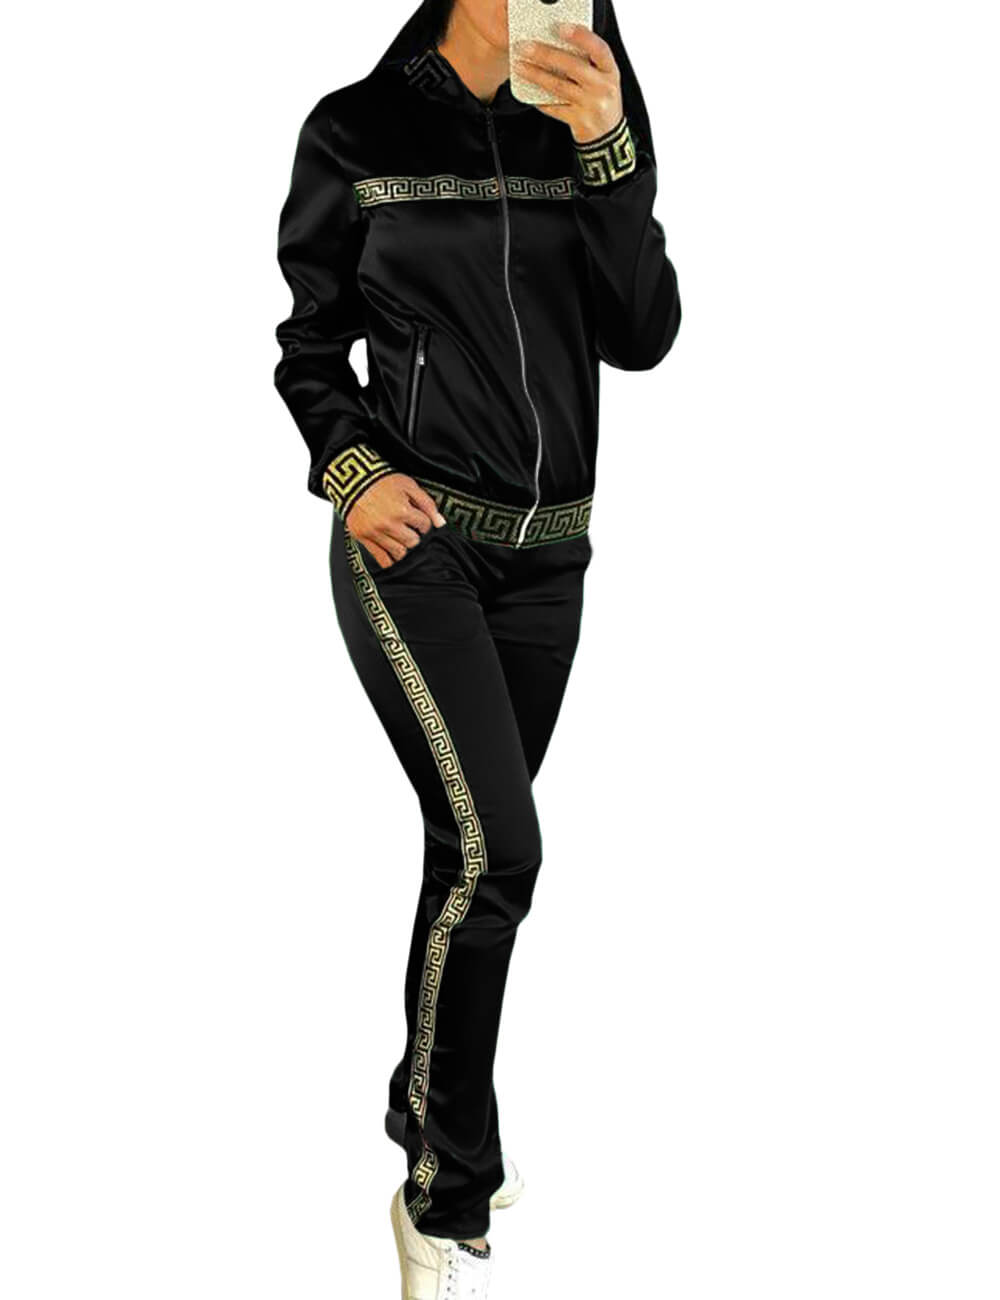 Long Sleeve Two Piece Tracksuit Plus Size Jackets and Pants Suits Workout 2 Piece Sportswear Sweatsuits